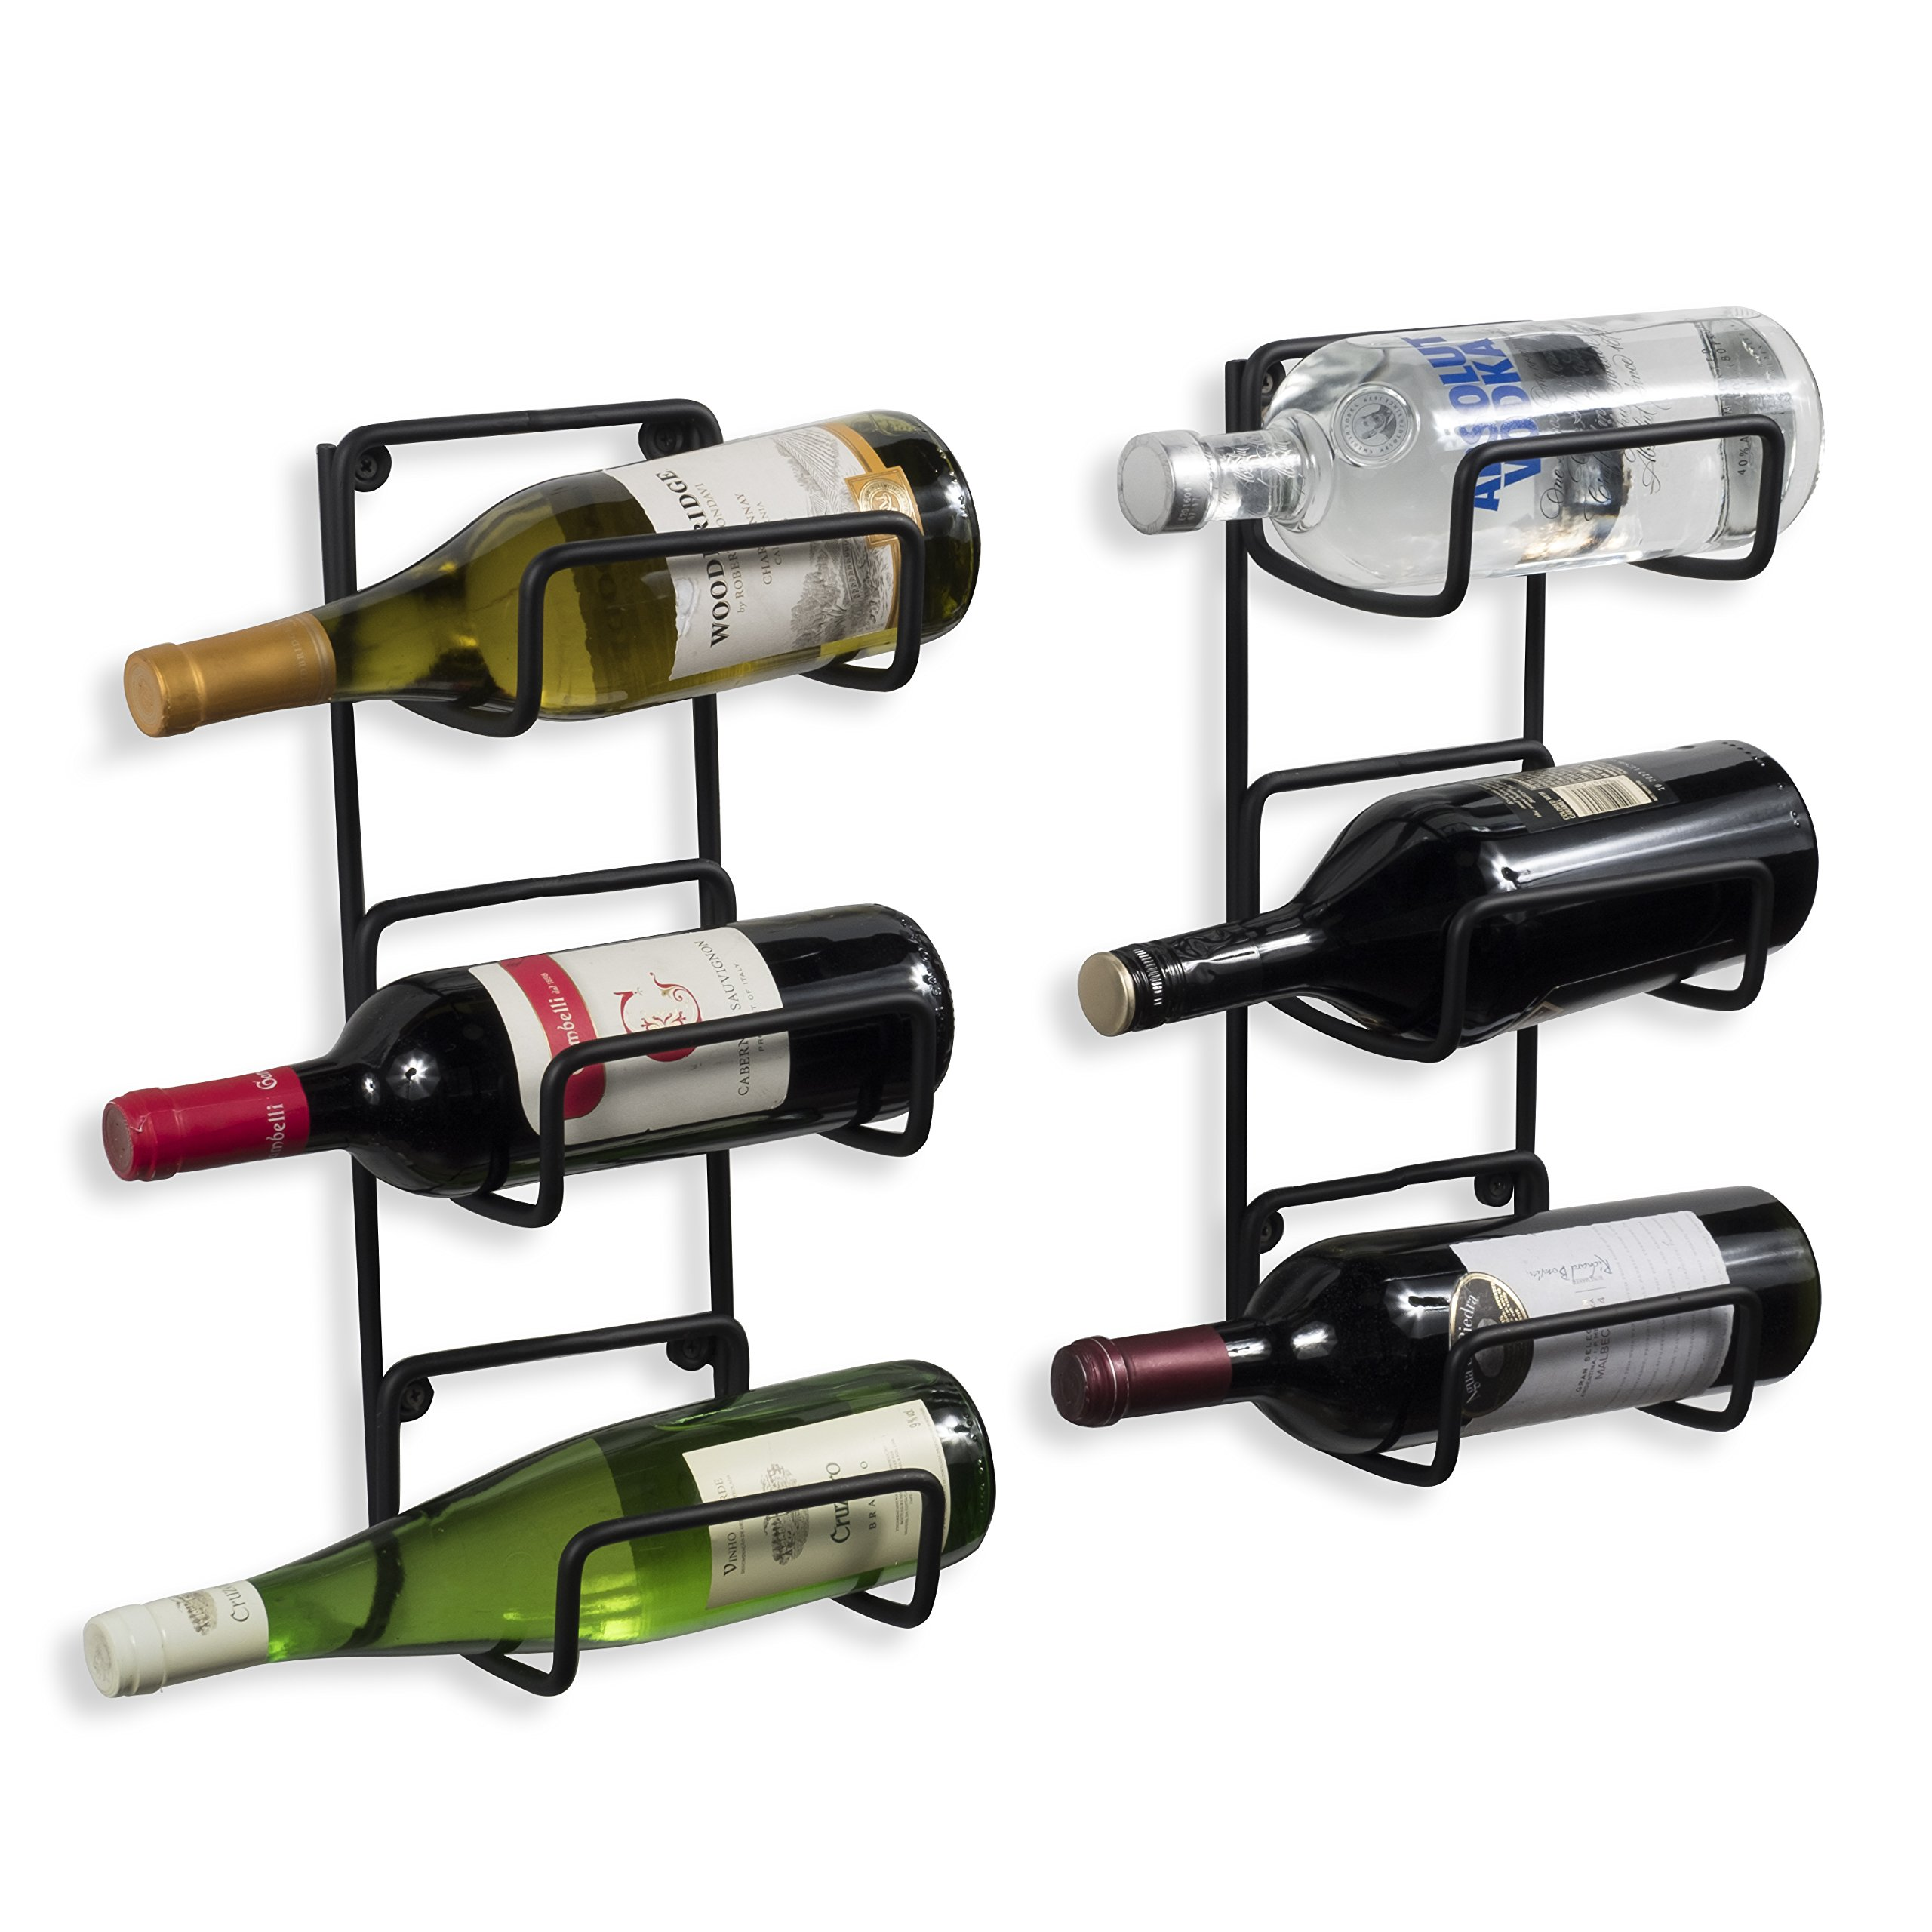 Wallniture Wrought Iron Wine Rack – Rustic Style 6 Bottle Holder Display in 2 Parts Black by Wallniture